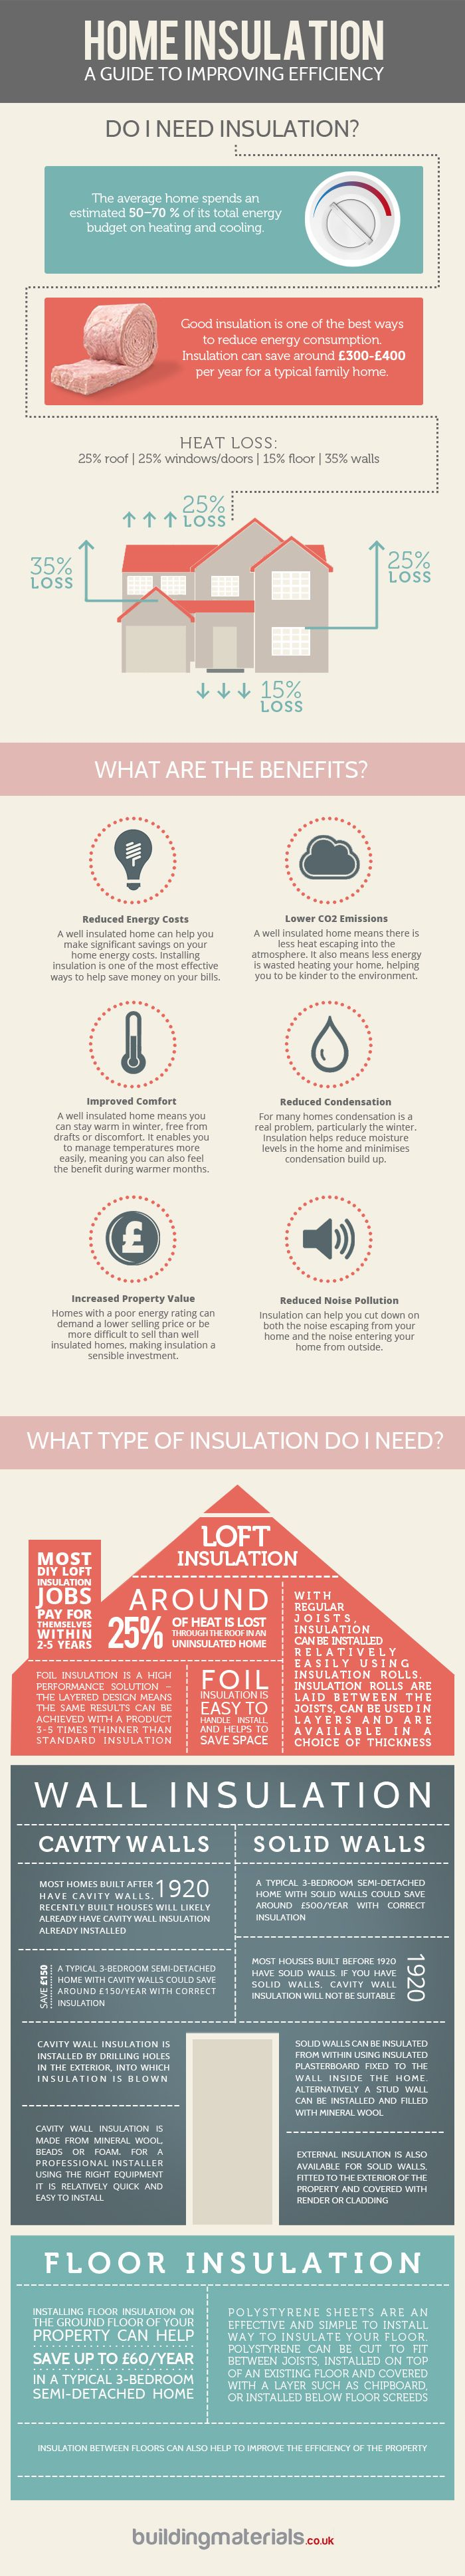 Home Insulation 101 A Guide To Insulating Your Home